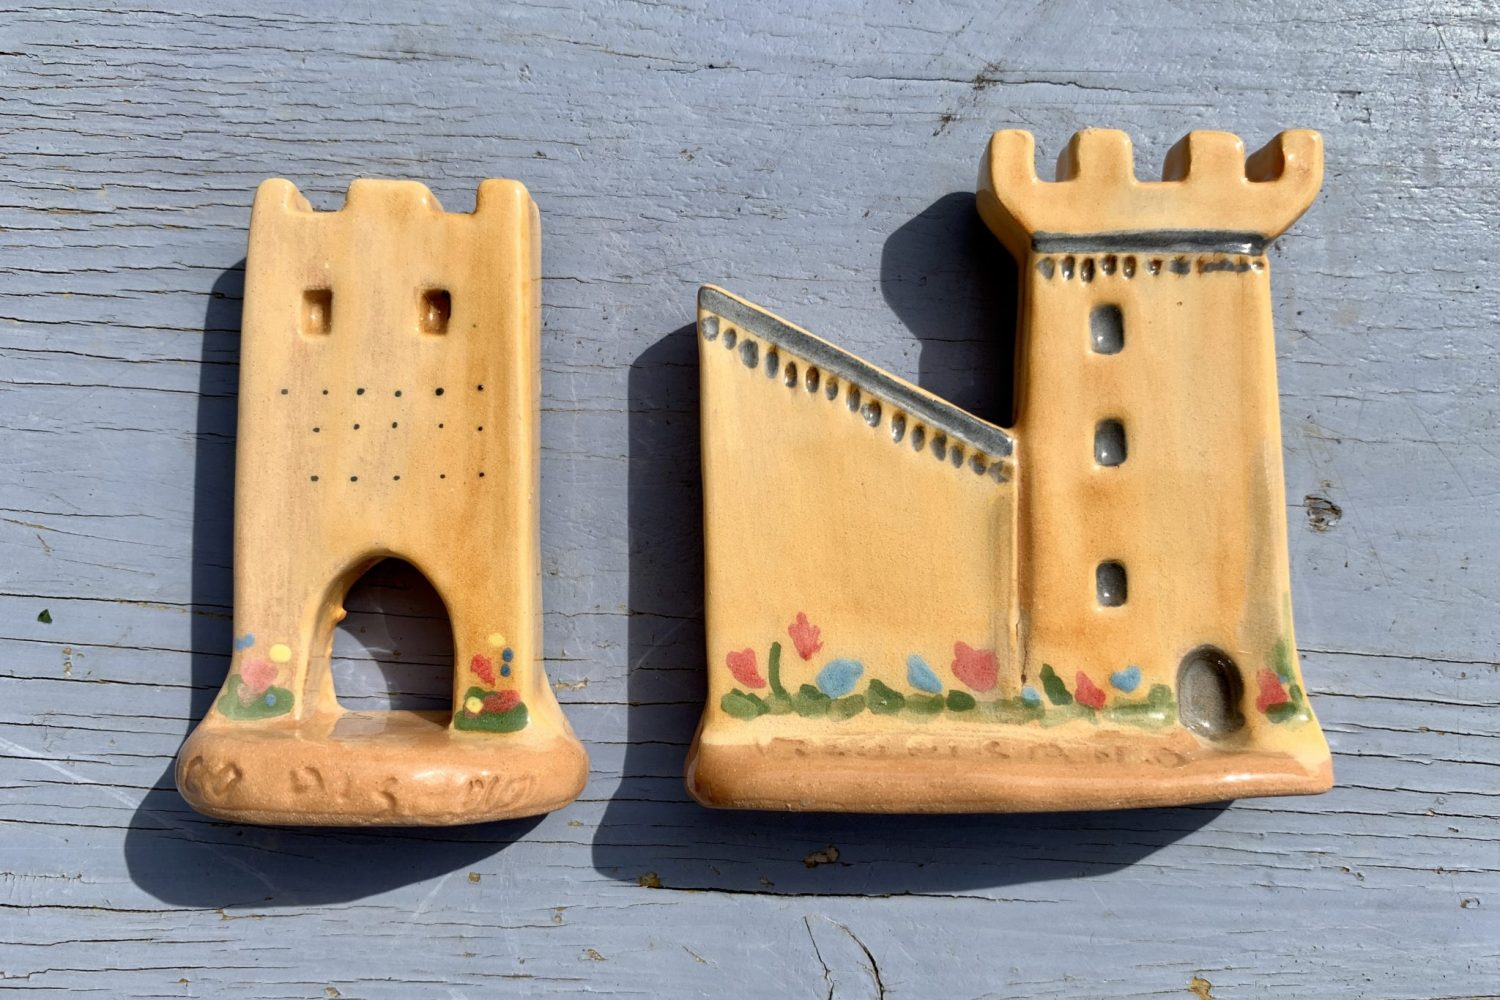 #12Fridge magnets inspired by Vicopisano towers